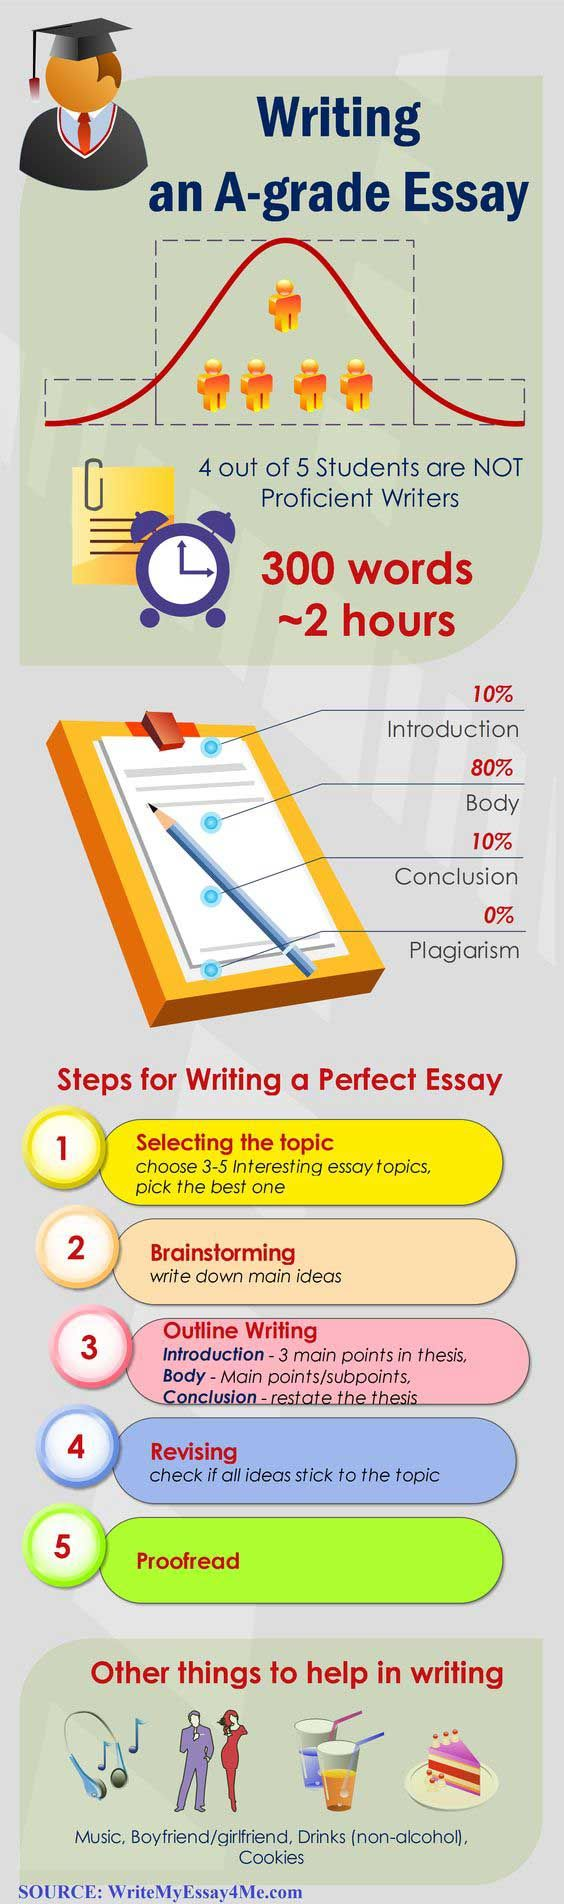 College Vs High School Essay Compare And Contrast  Infographics That Will Teach You How To Write An A Research Paper Or  Essay Synthesis Essay Topics also First Day Of High School Essay Best  Write My Research Paper Ideas On Pinterest  College  How To Write A Good Proposal Essay